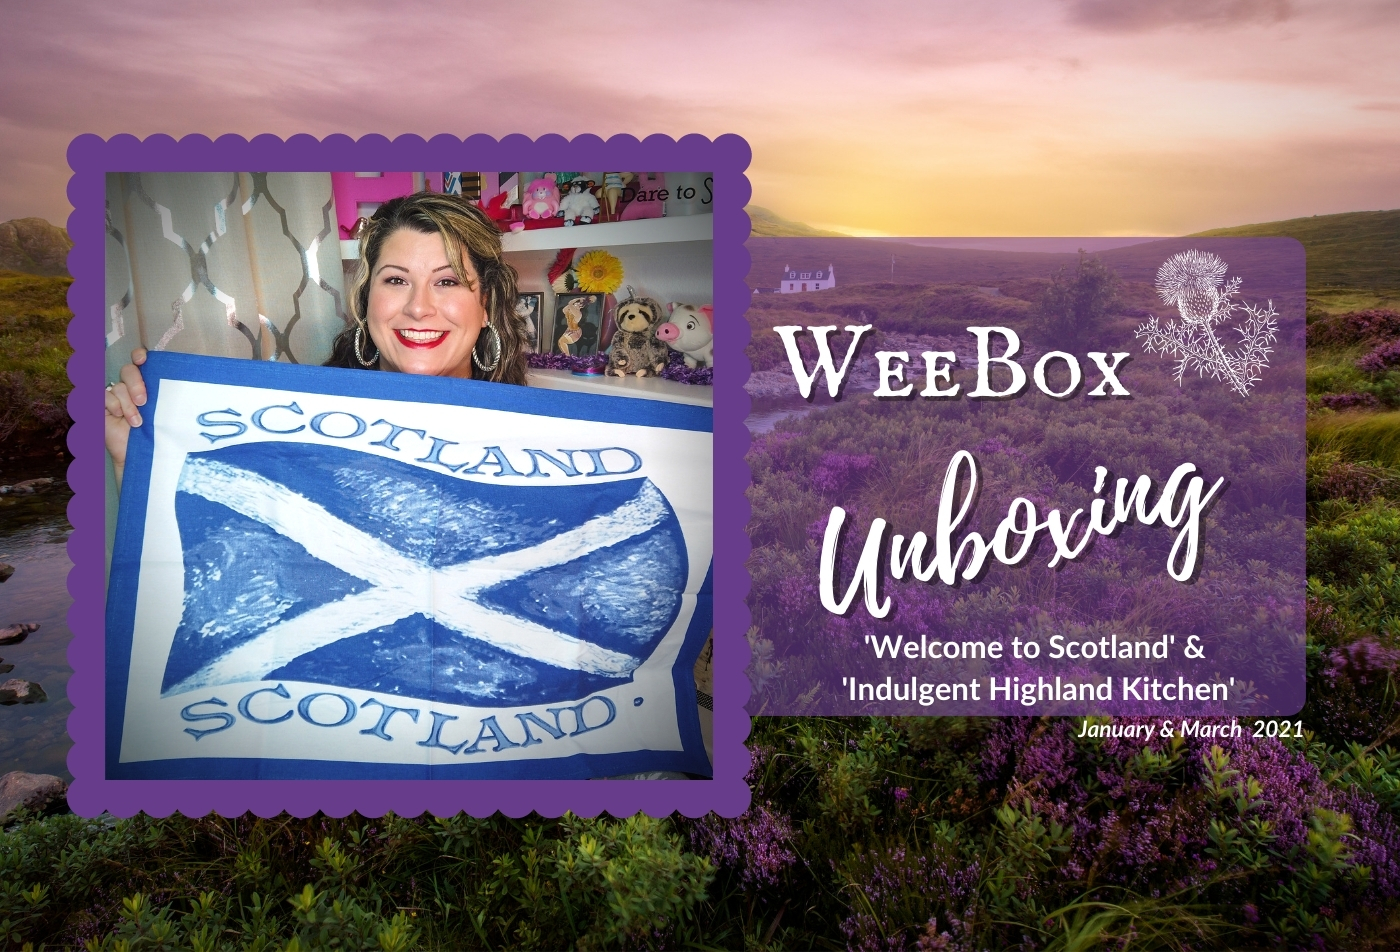 Weebox Unboxing: 'Welcome to Scotland' (Jan.) & 'Indulgent Highland Kitchen' (March) 2021